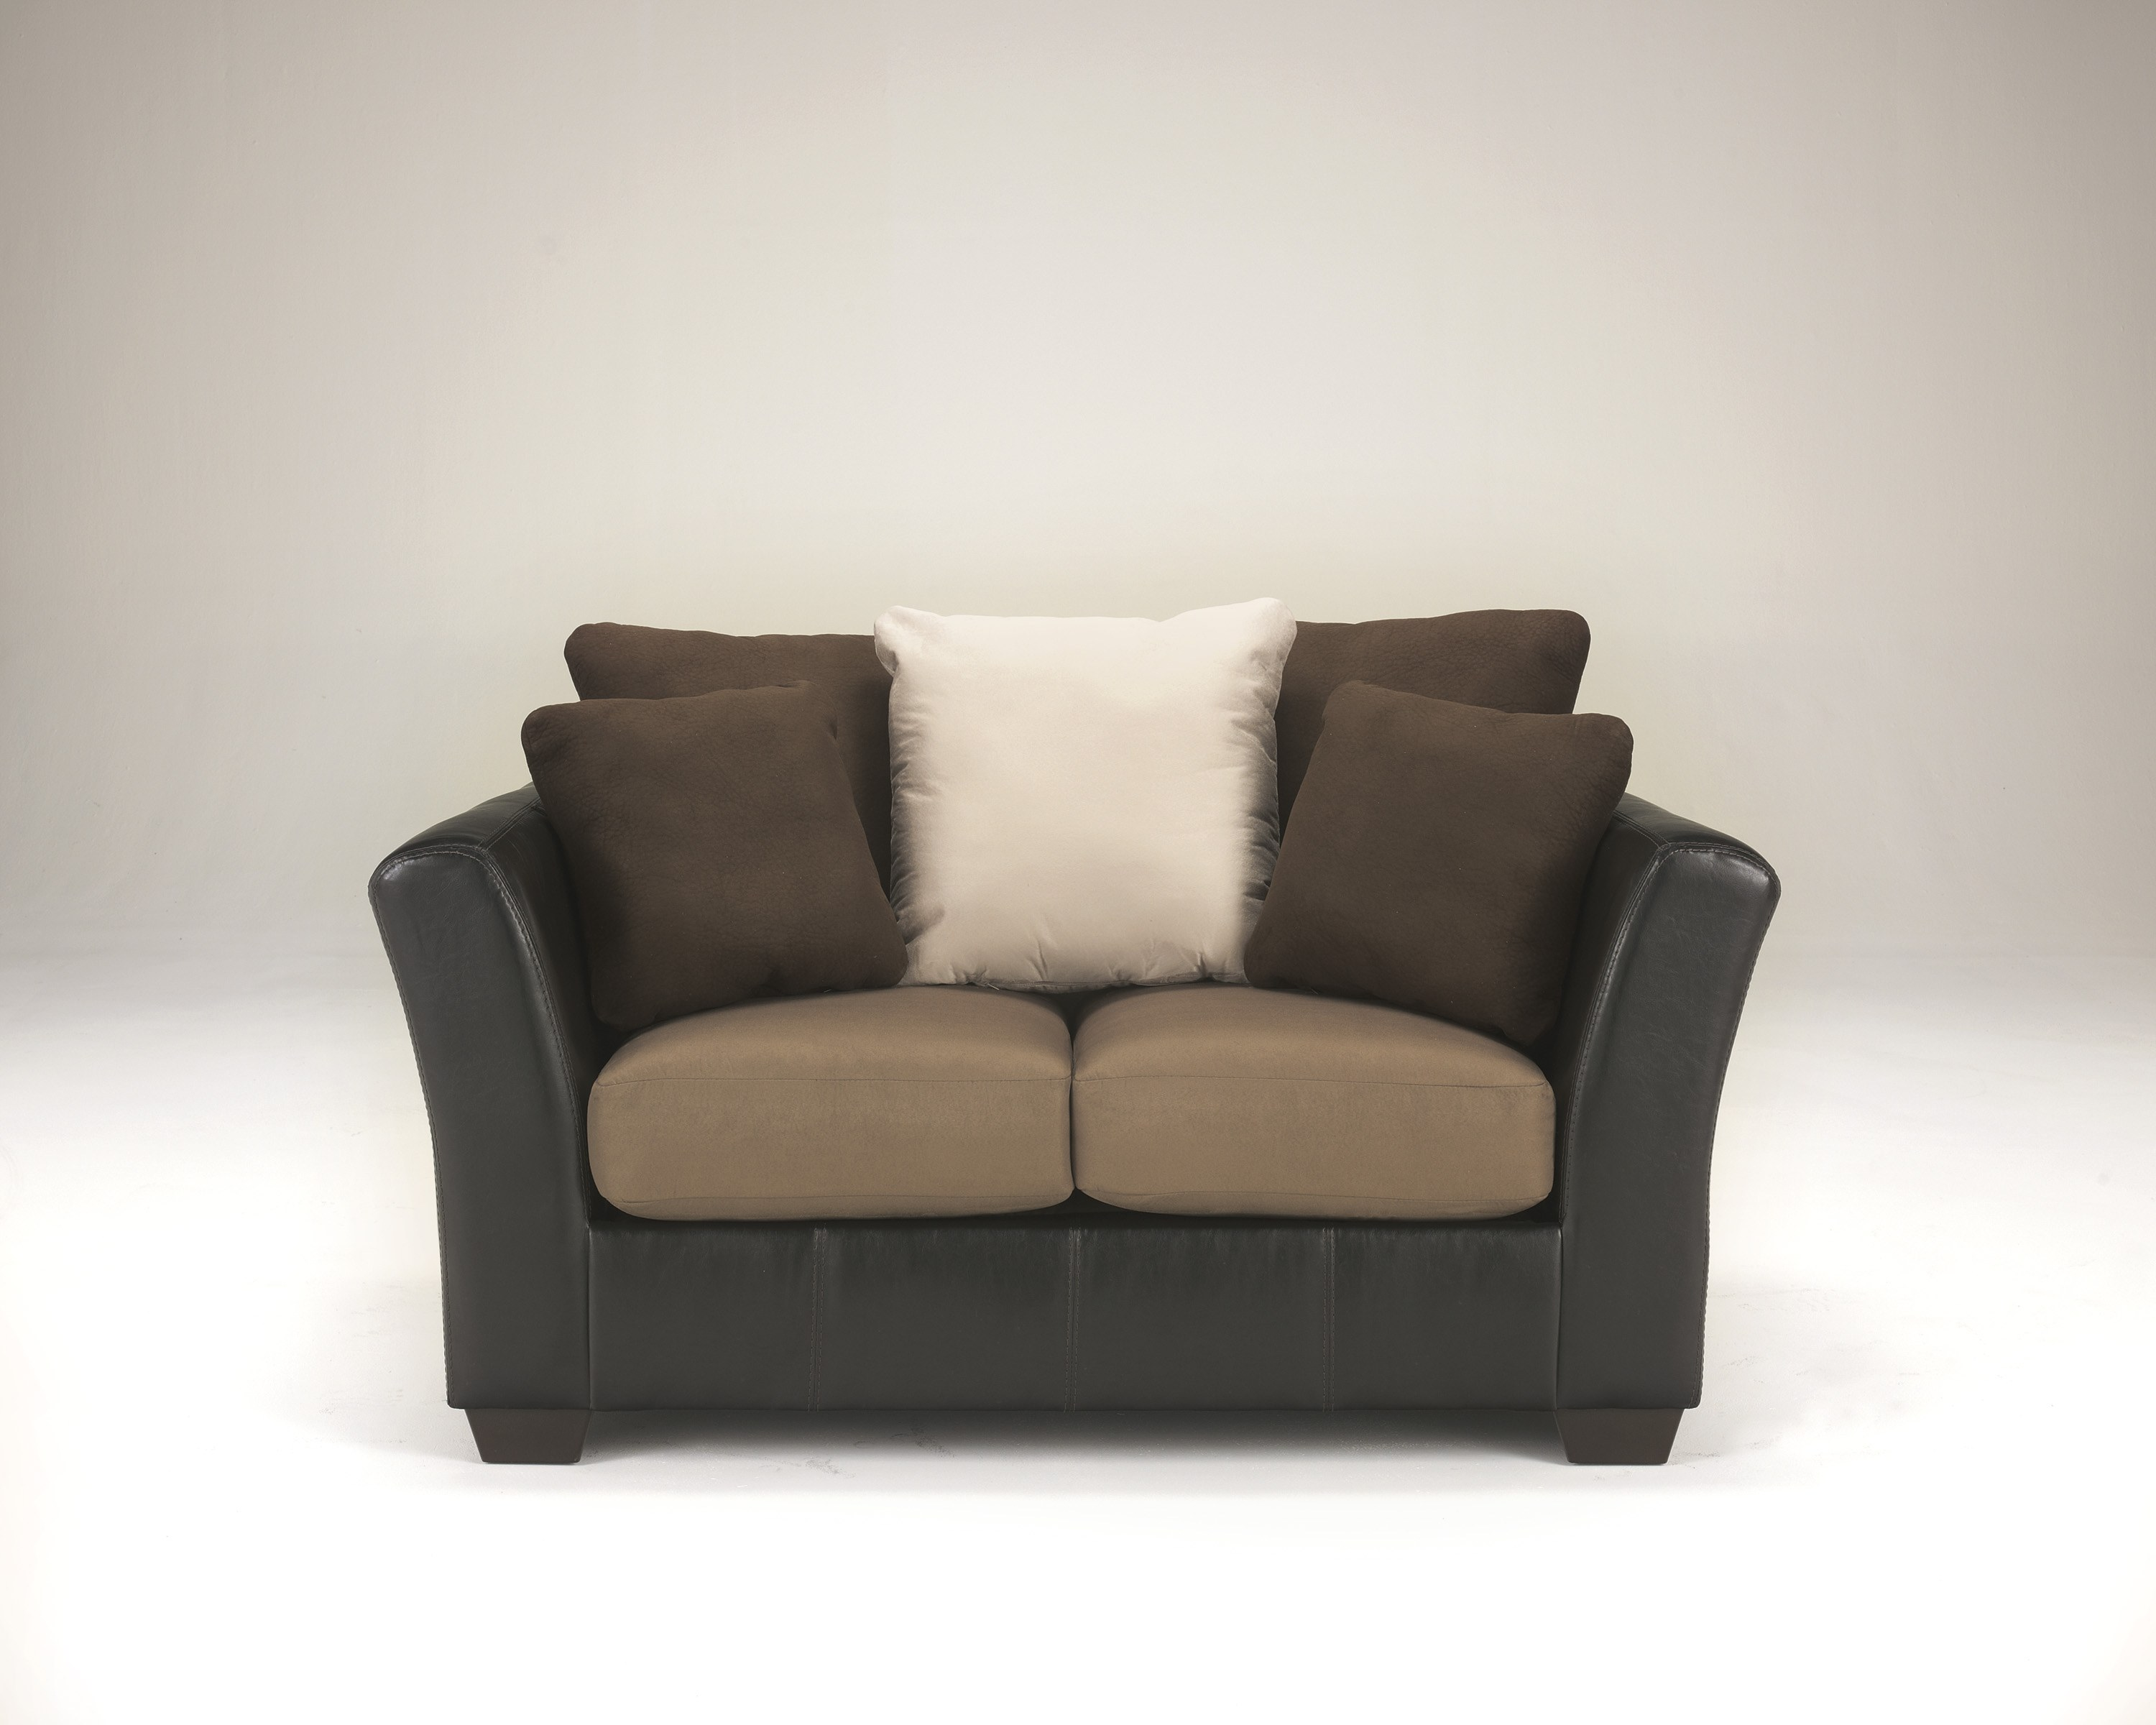 Loveseat by Ashley Furniture 3000 x 2400